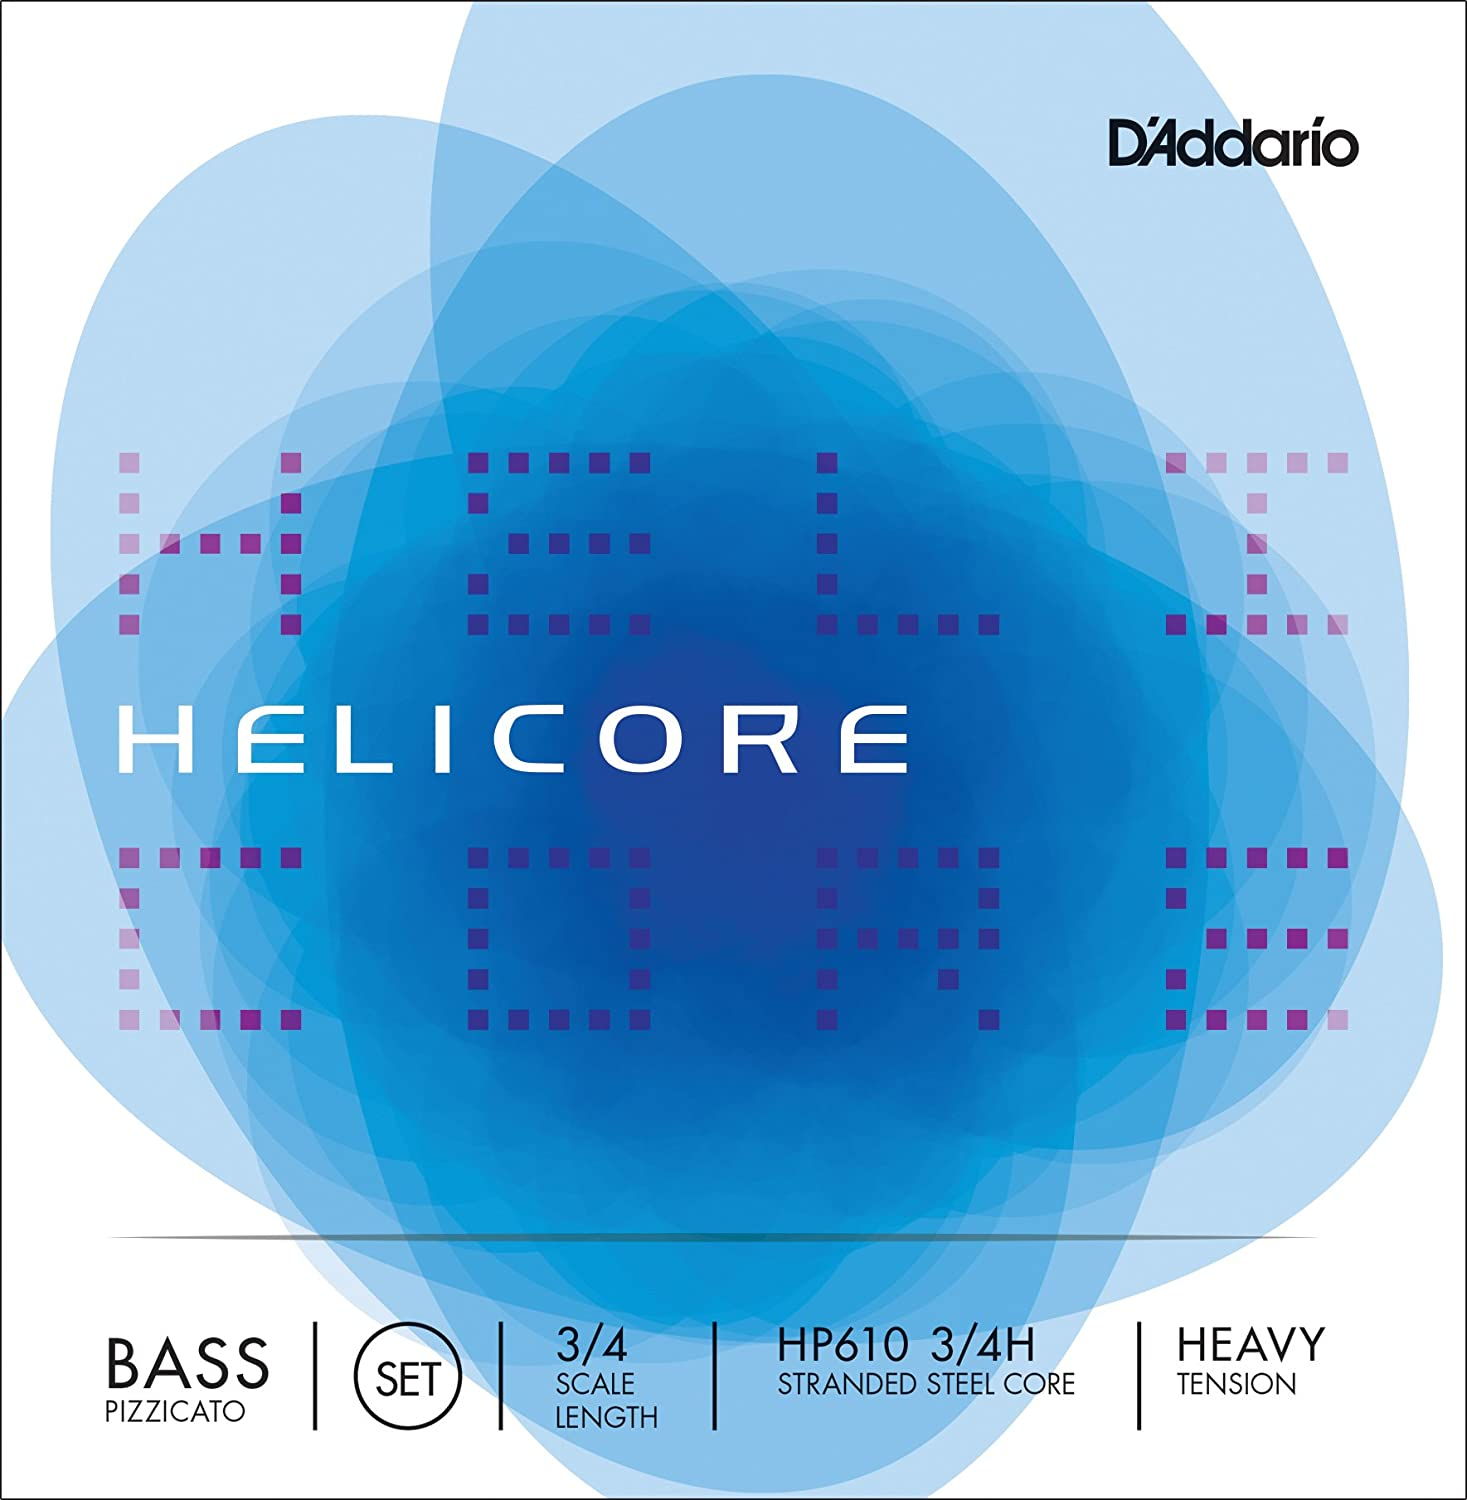 D'Addario Helicore Pizzicato Bass String Set, 3/4 Scale, Heavy Tension D' Addario HP610 3/4H